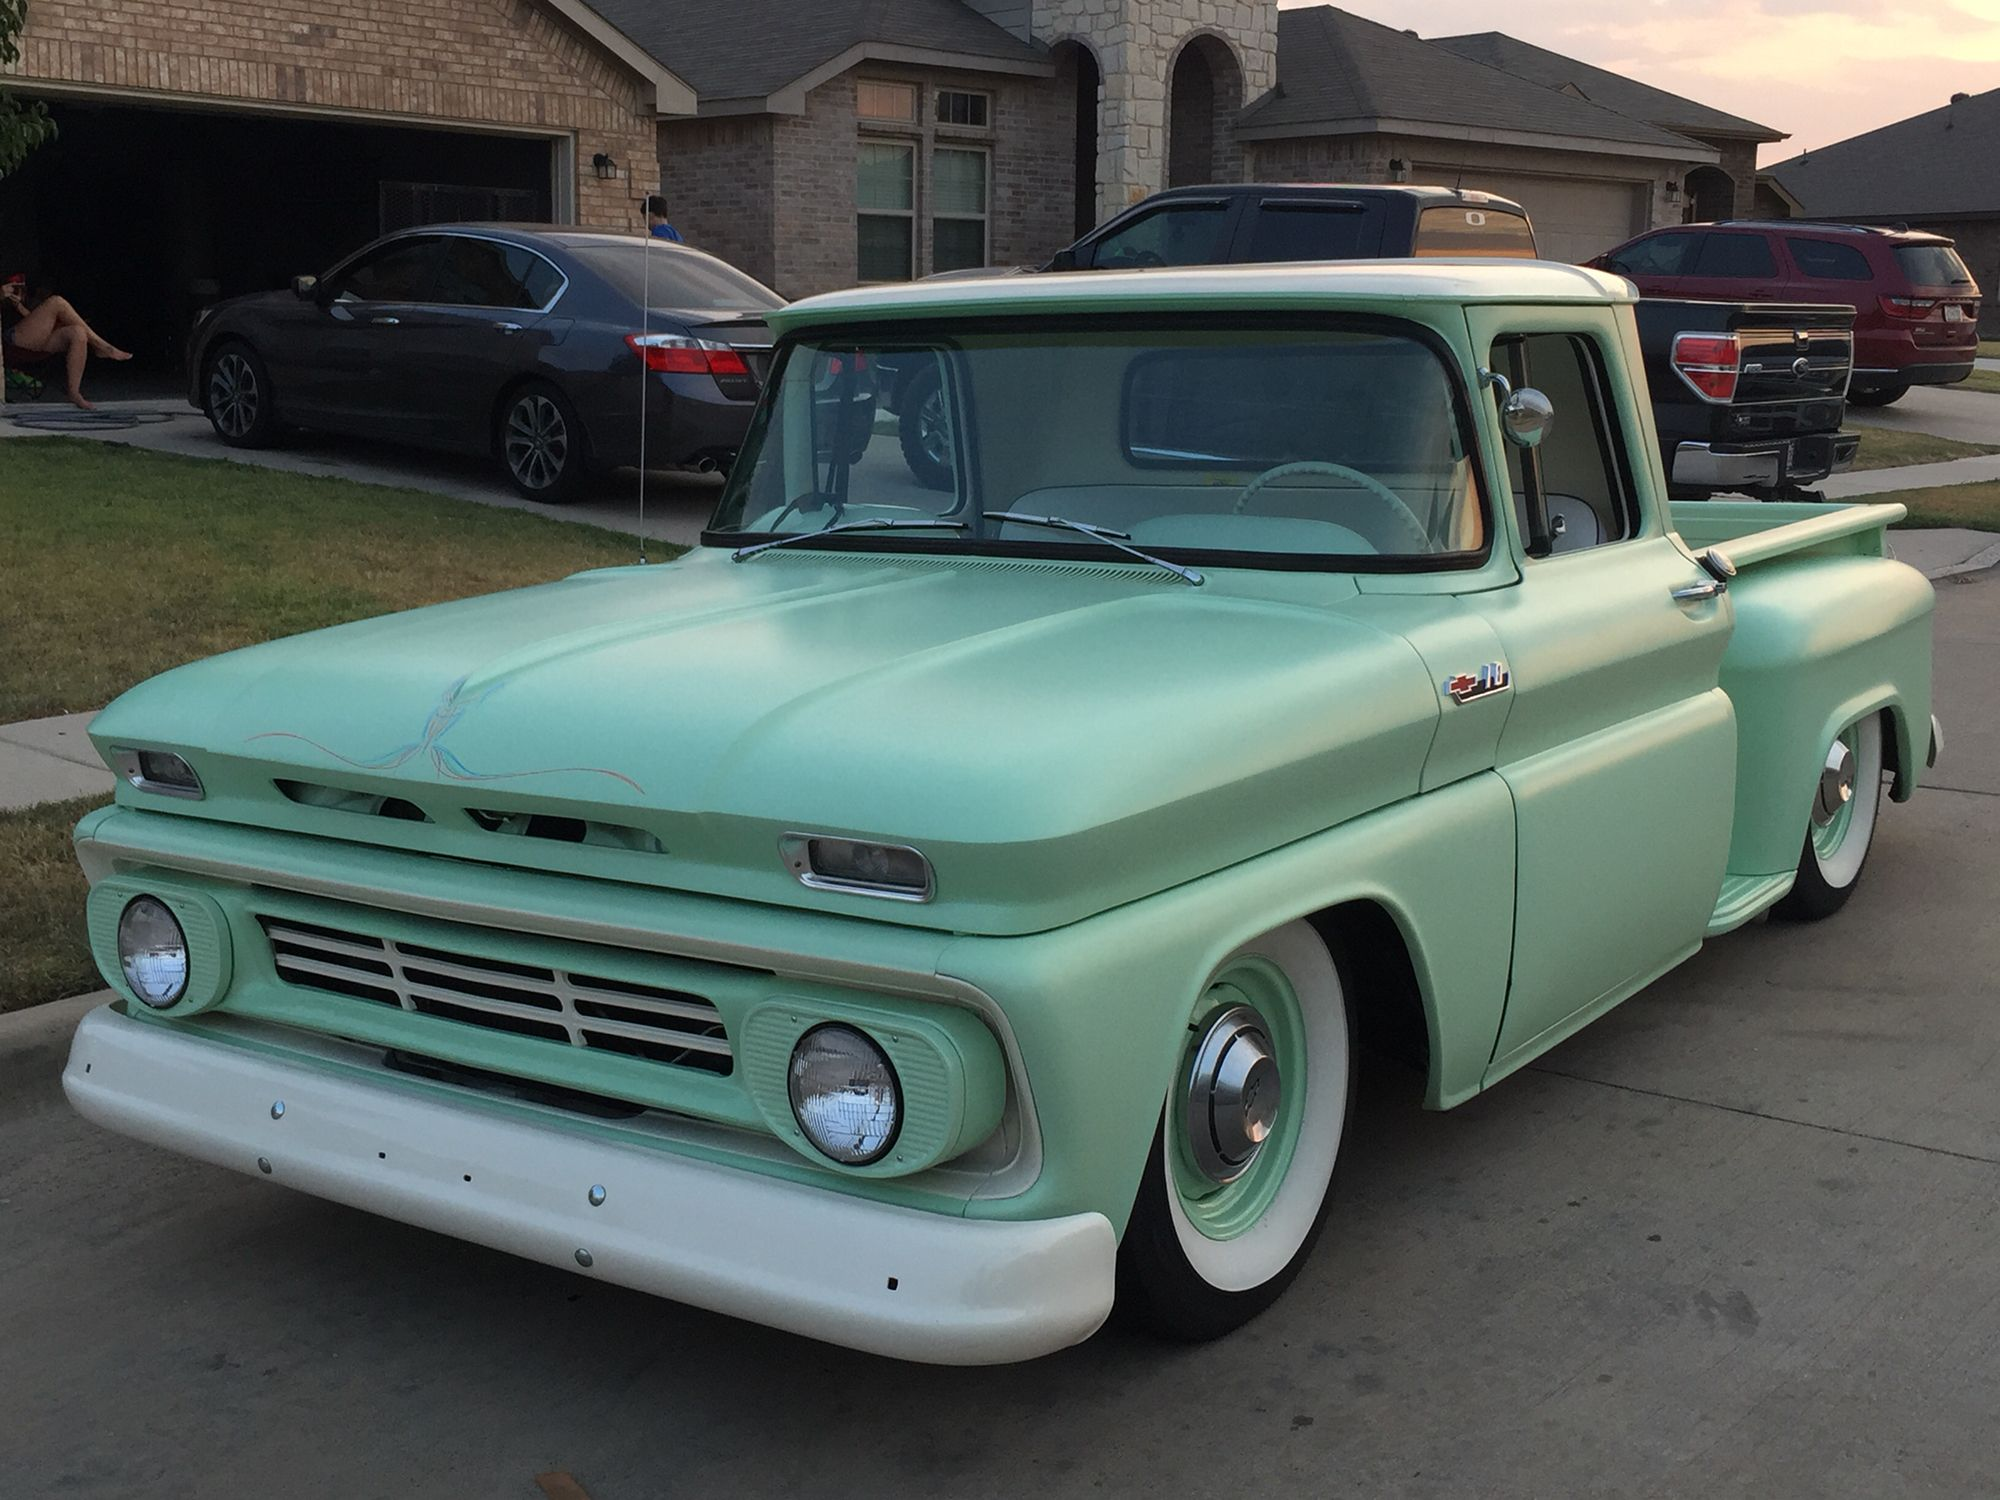 Find this pin and more on c 10 trucks